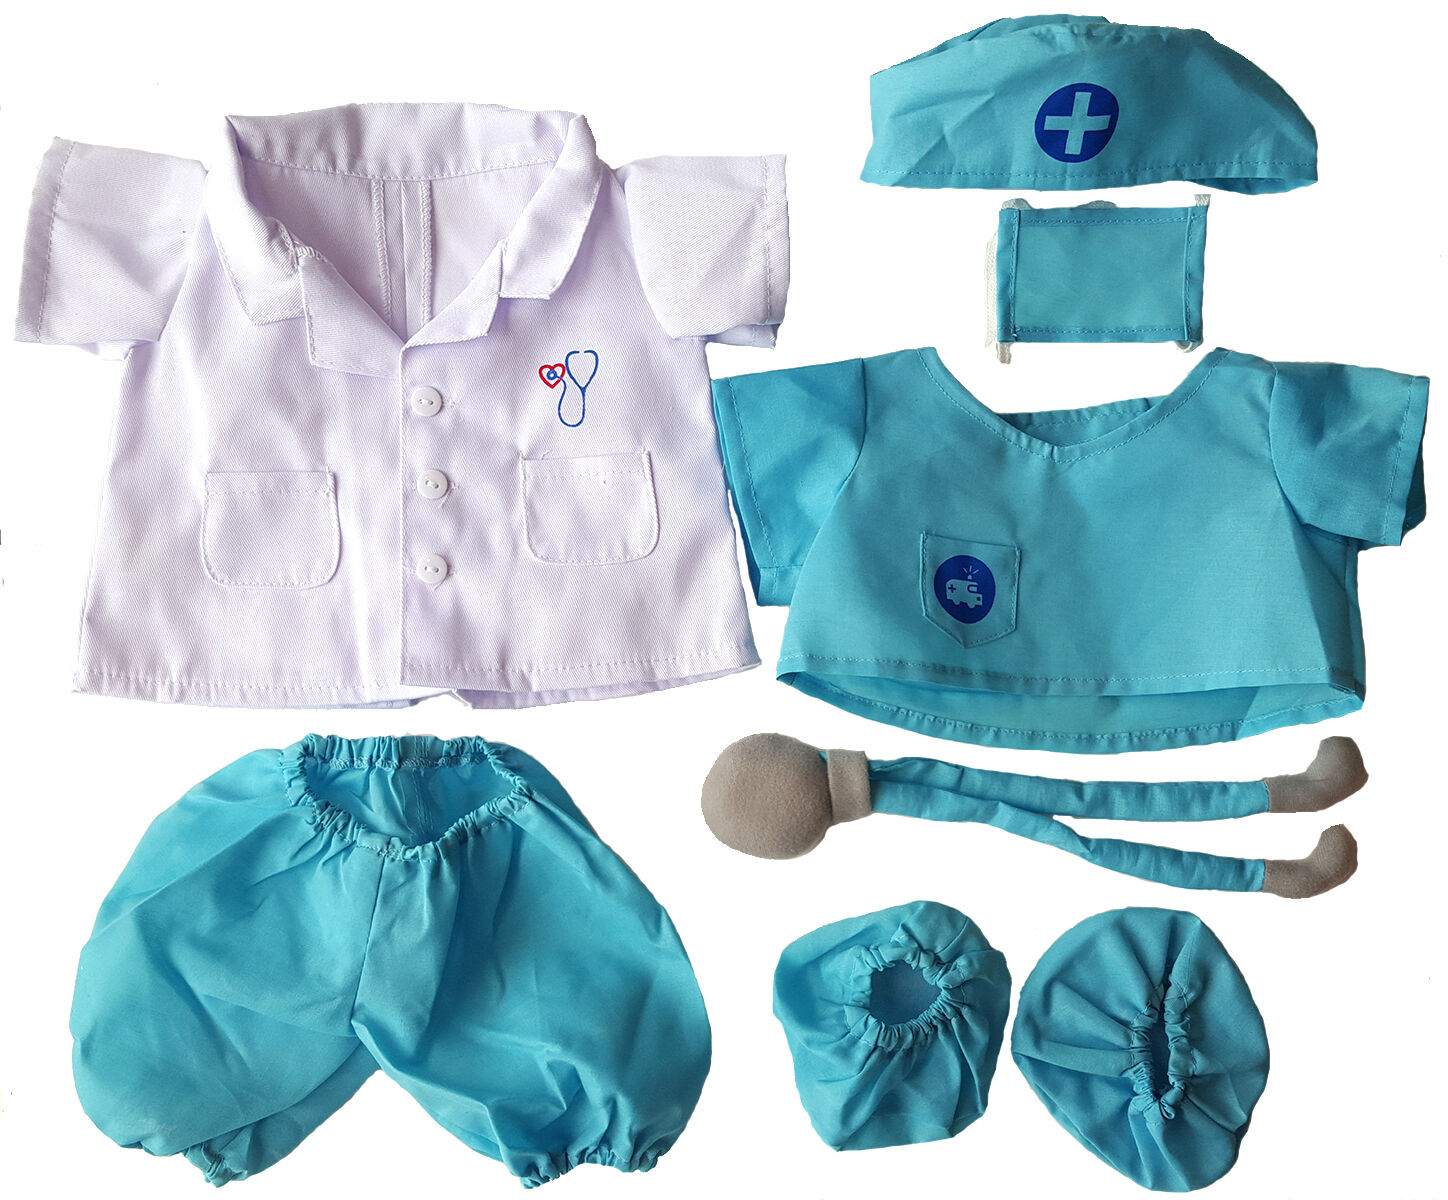 Doctor Outfit Teddy Bear Clothes Fits Most 14